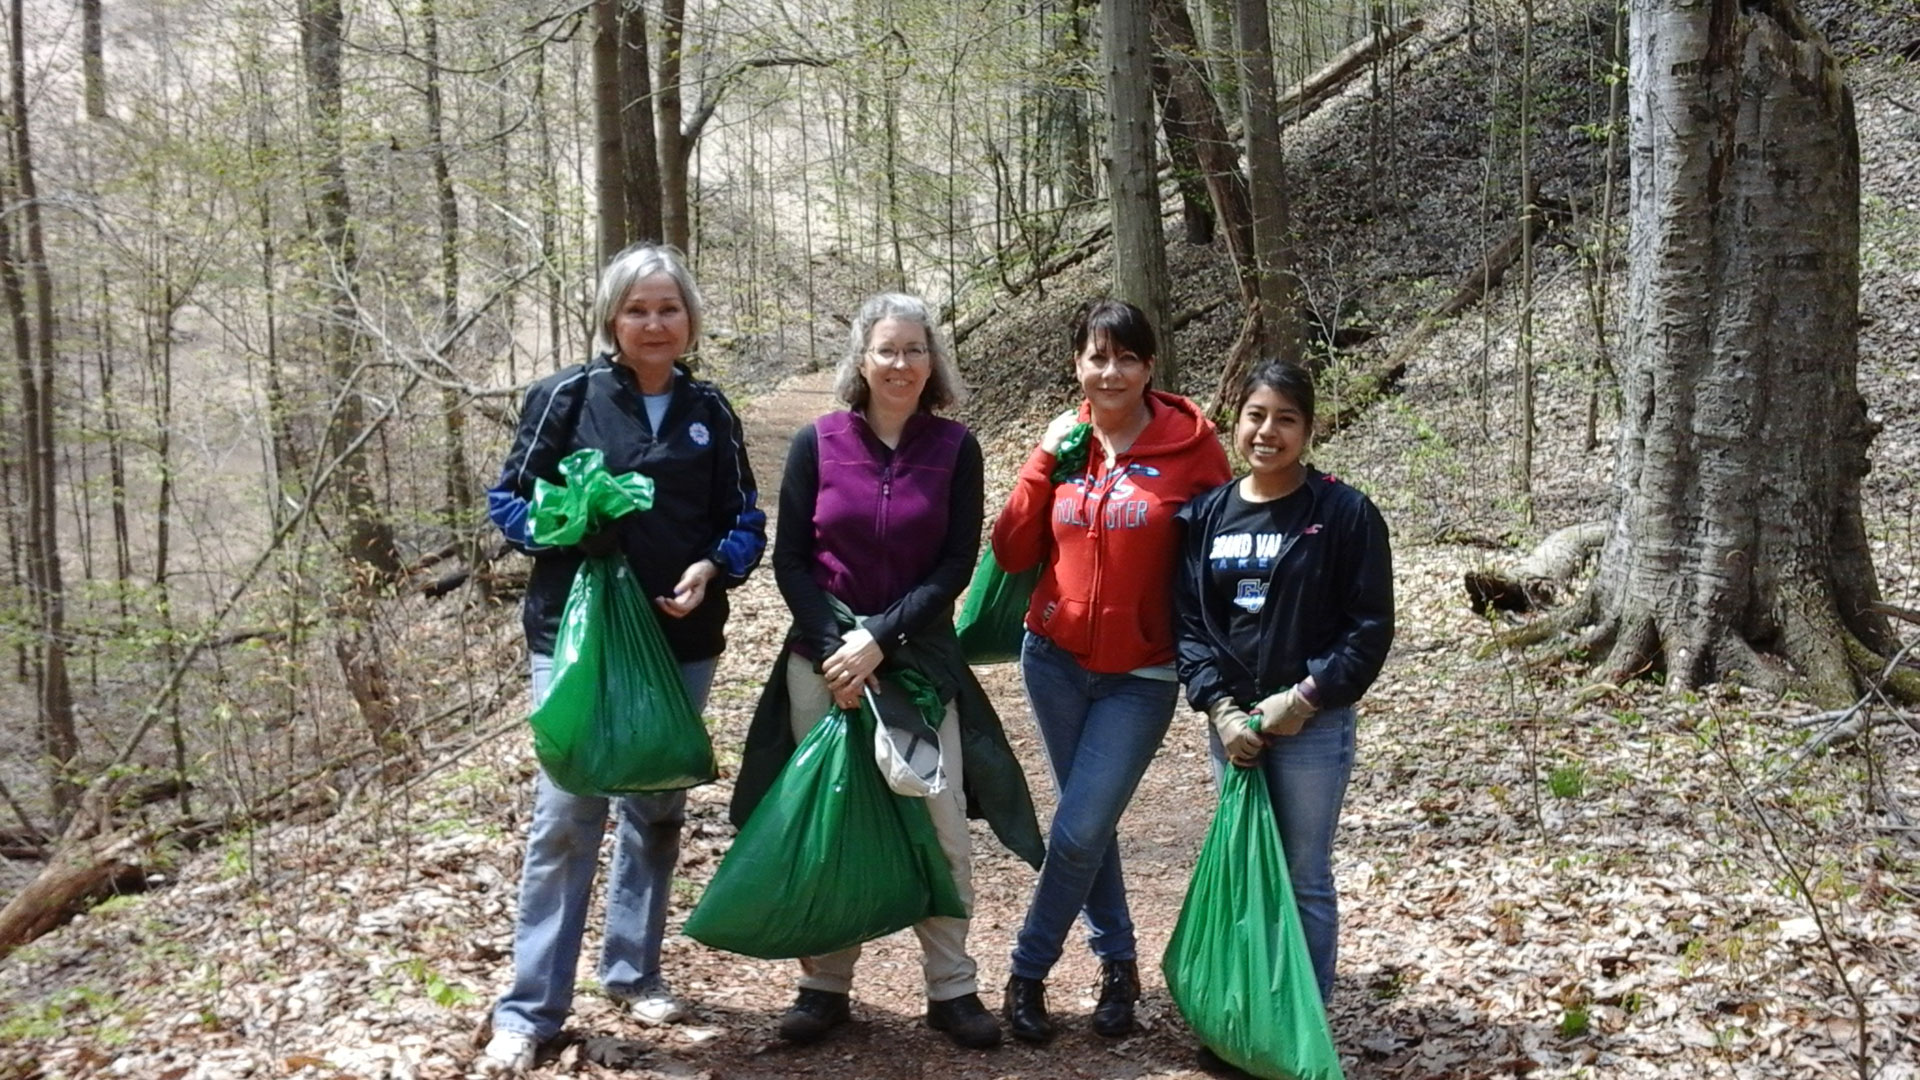 Volunteers with the DNR working to clear garlic mustard, an invasive species